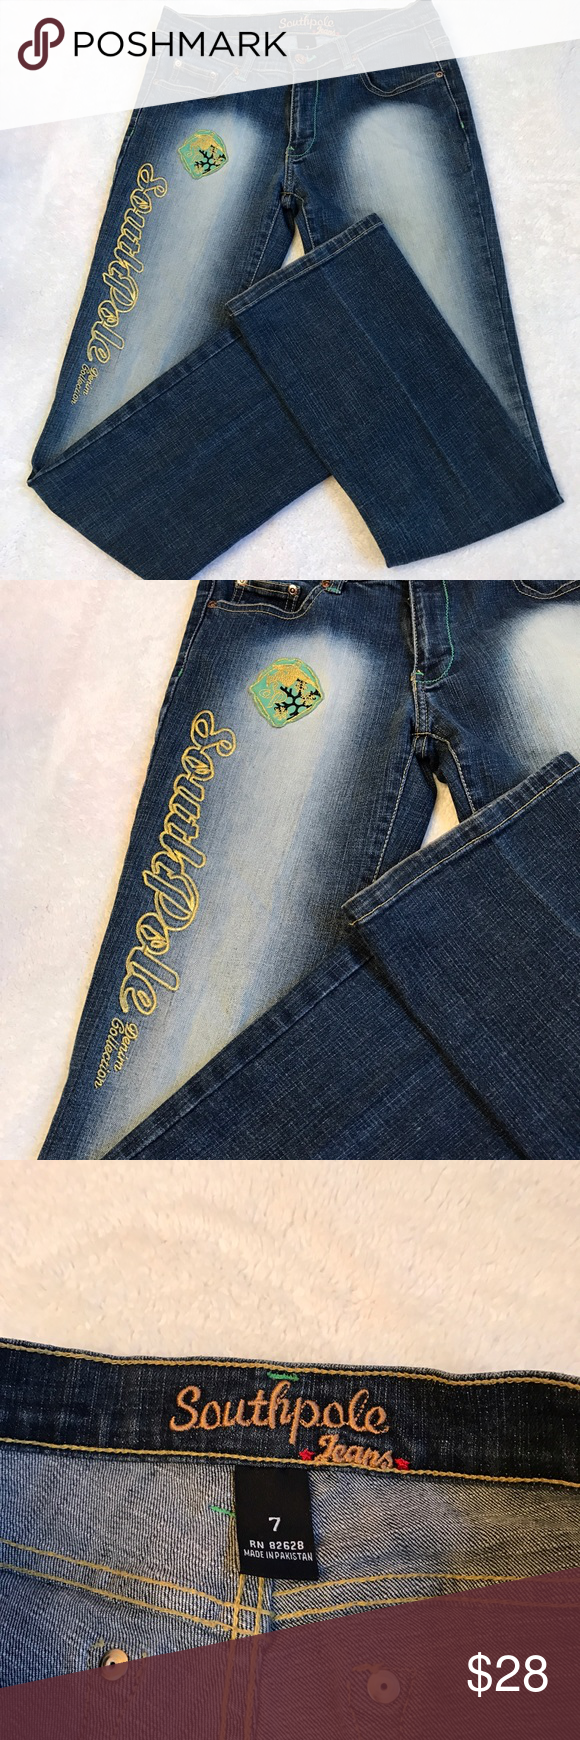 South Pole jeans Like new condition. Inseam 31 inches South Pole Jeans Boot Cut